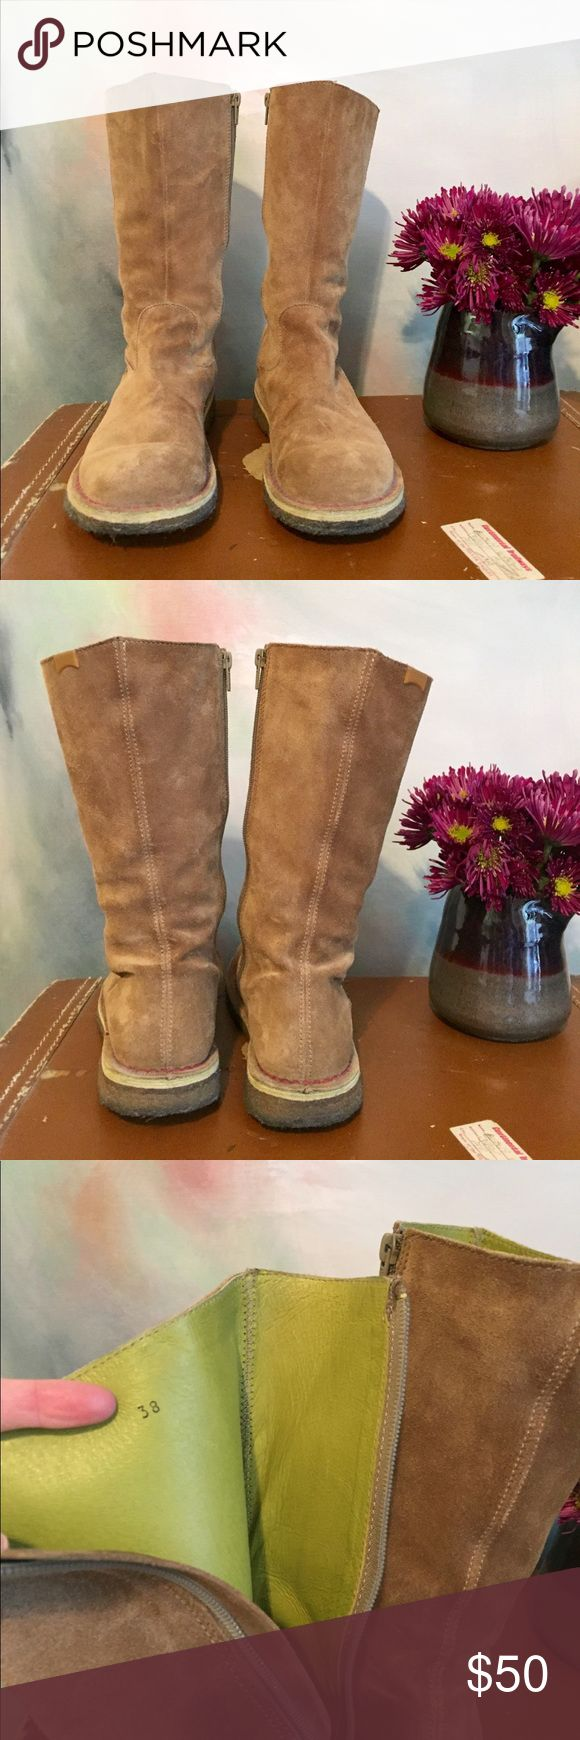 Camper brown suede boots Super cute brown suede Camper boots EUC only signs of wear is on the bottom of the soles. Very comfortable!! Hits at mid/low calf. Shoes